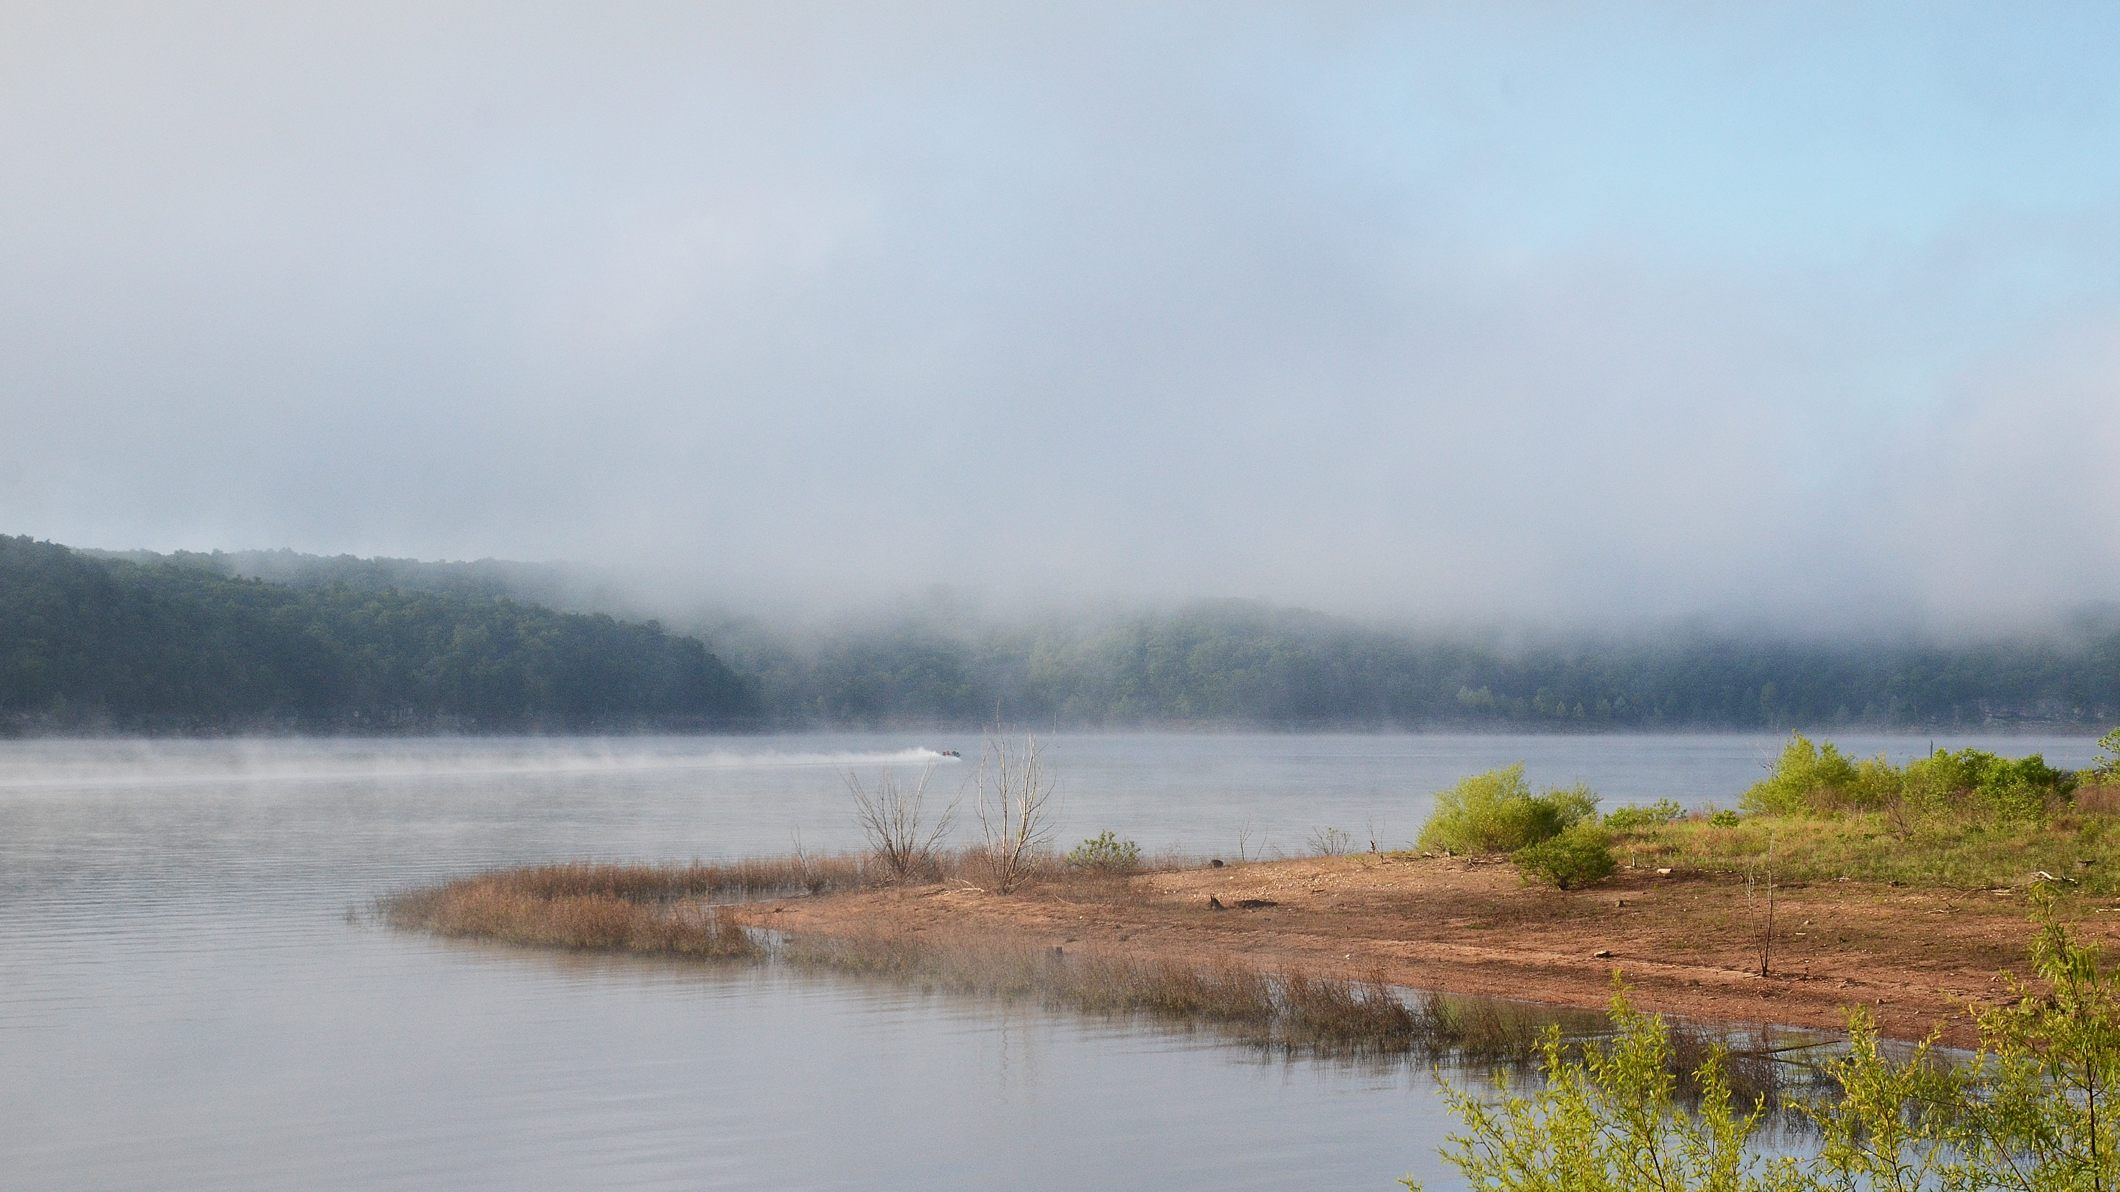 Early Morning mist on the lake - Berry Bend, Truman lake, Missouri